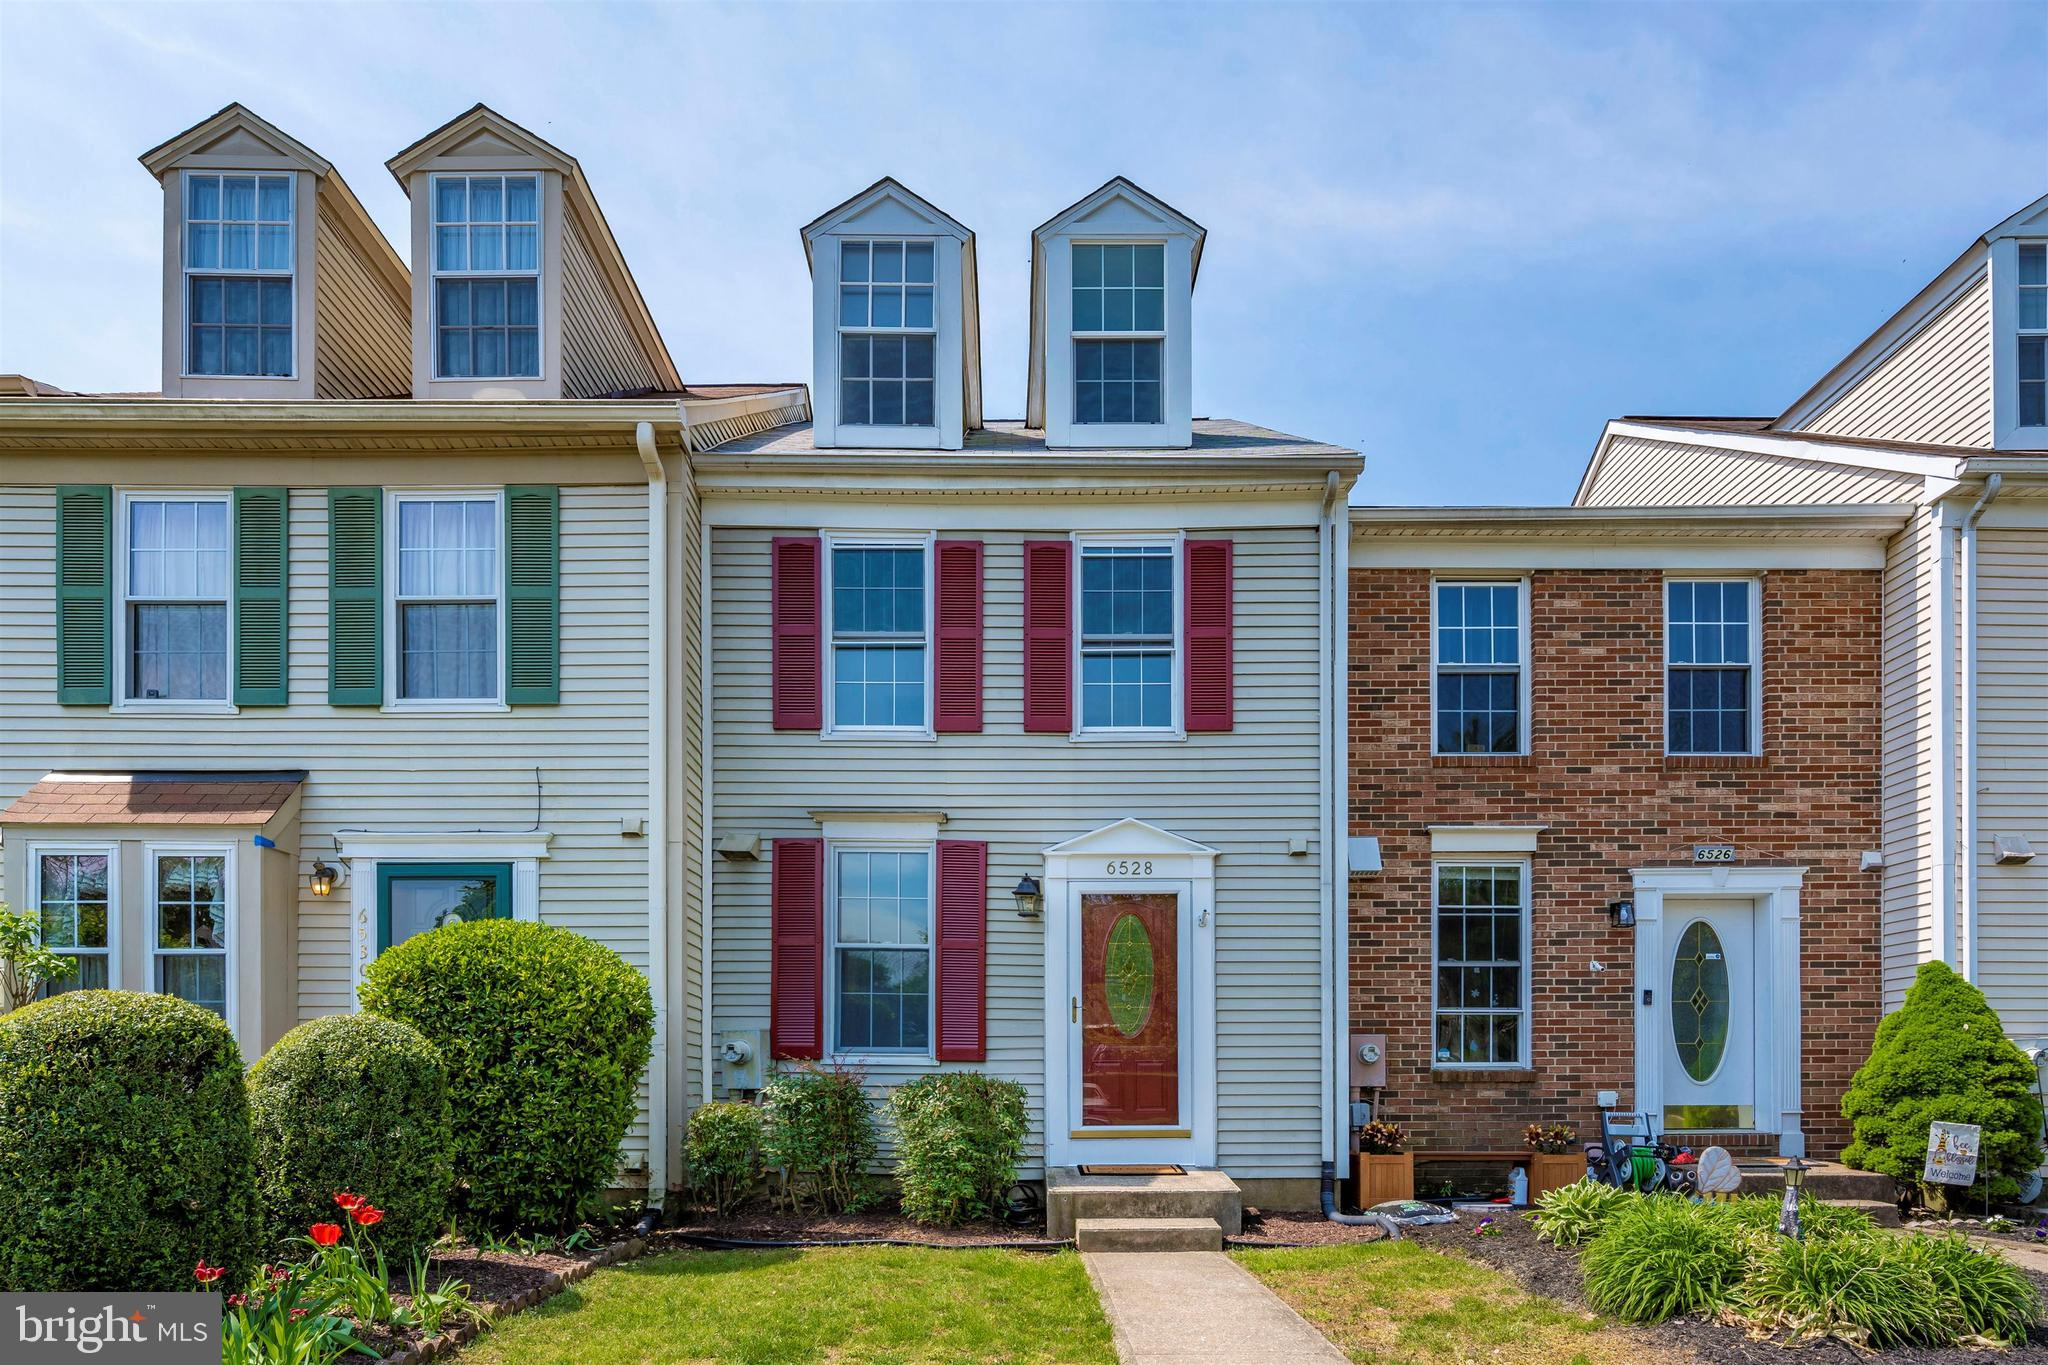 Fall in love with this beautiful townhome set in a great community at a reasonable price! This 4-lev